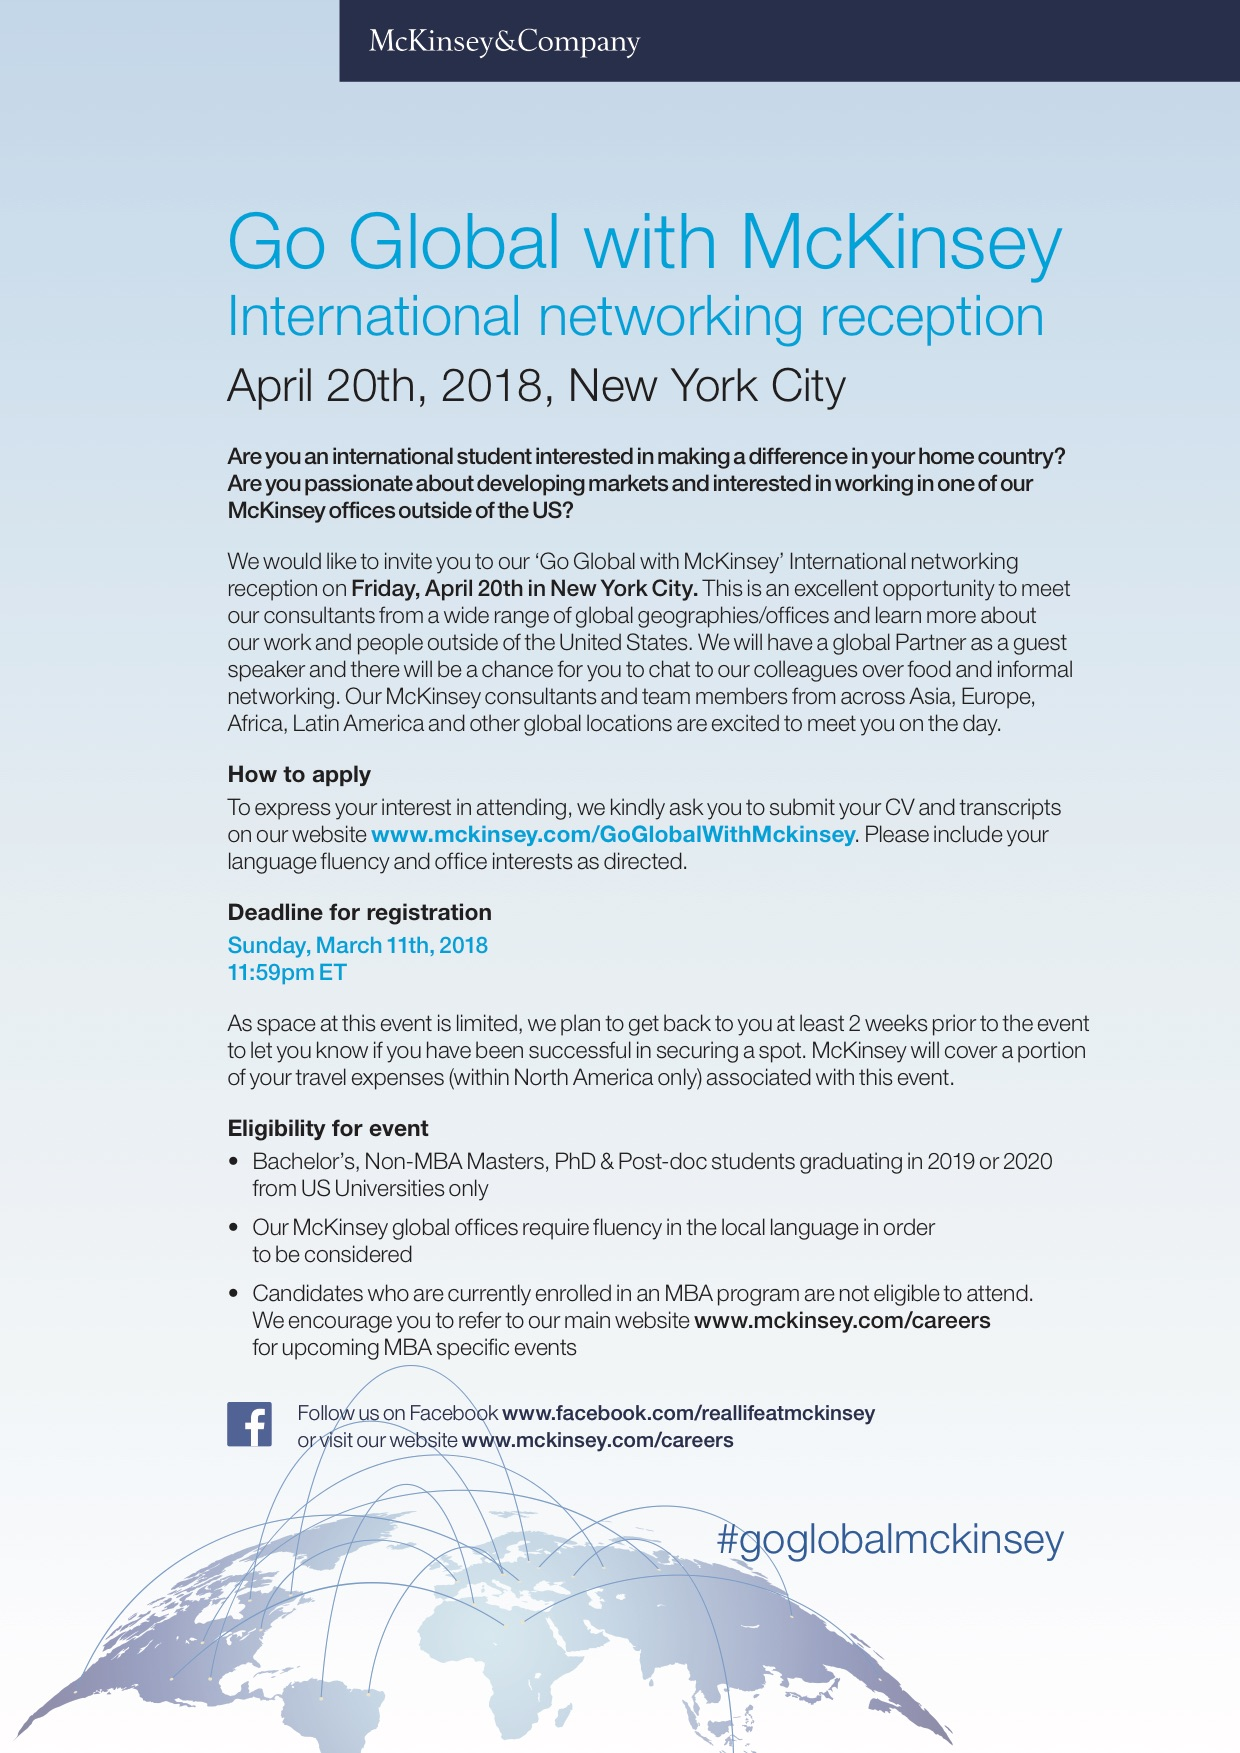 Go Global with McKinsey: International Networking Reception